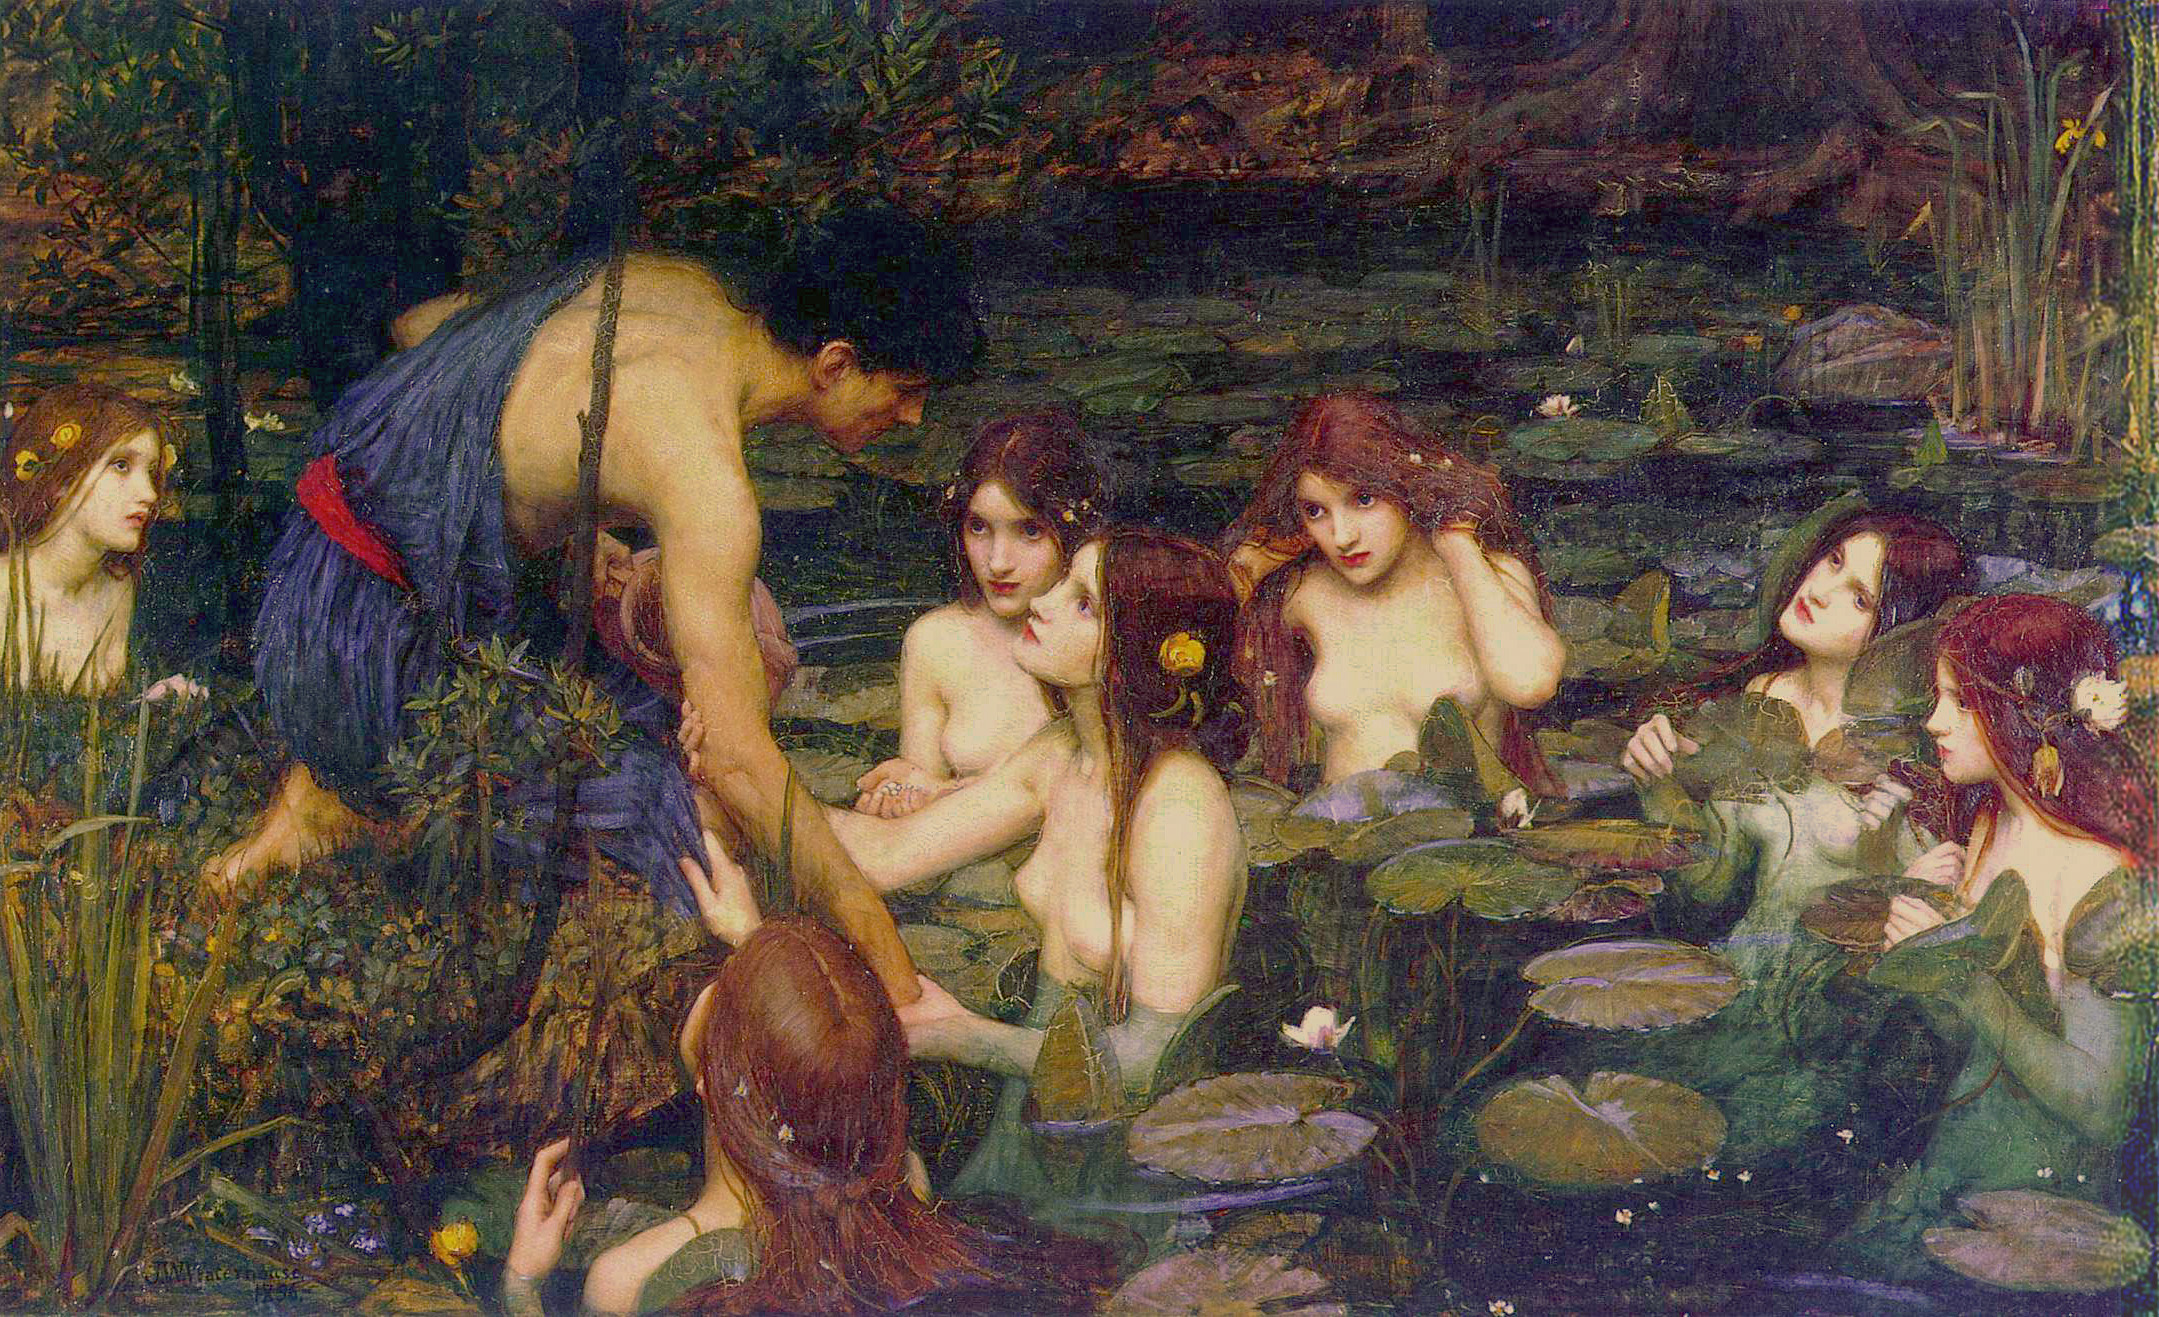 John William Waterhouse. Nymphs